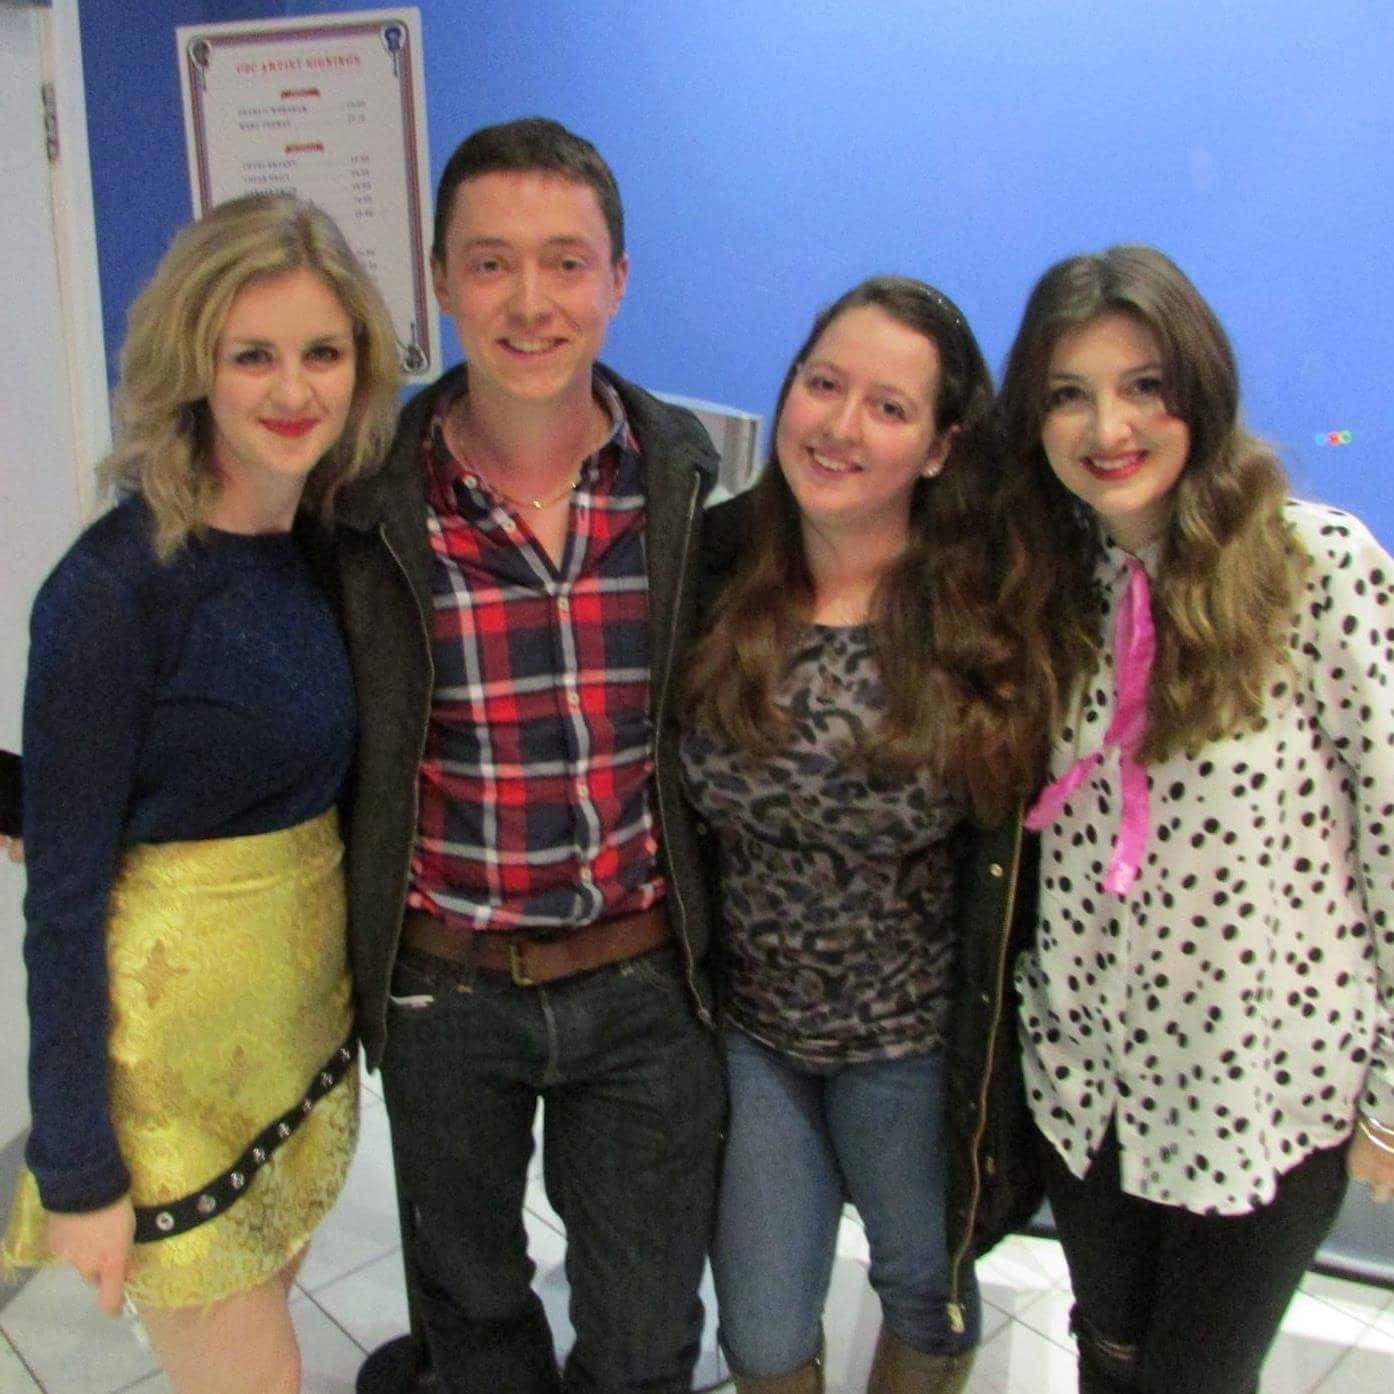 Country music duo Ward Thomas posing for a photo with presenters Dan and Nicola